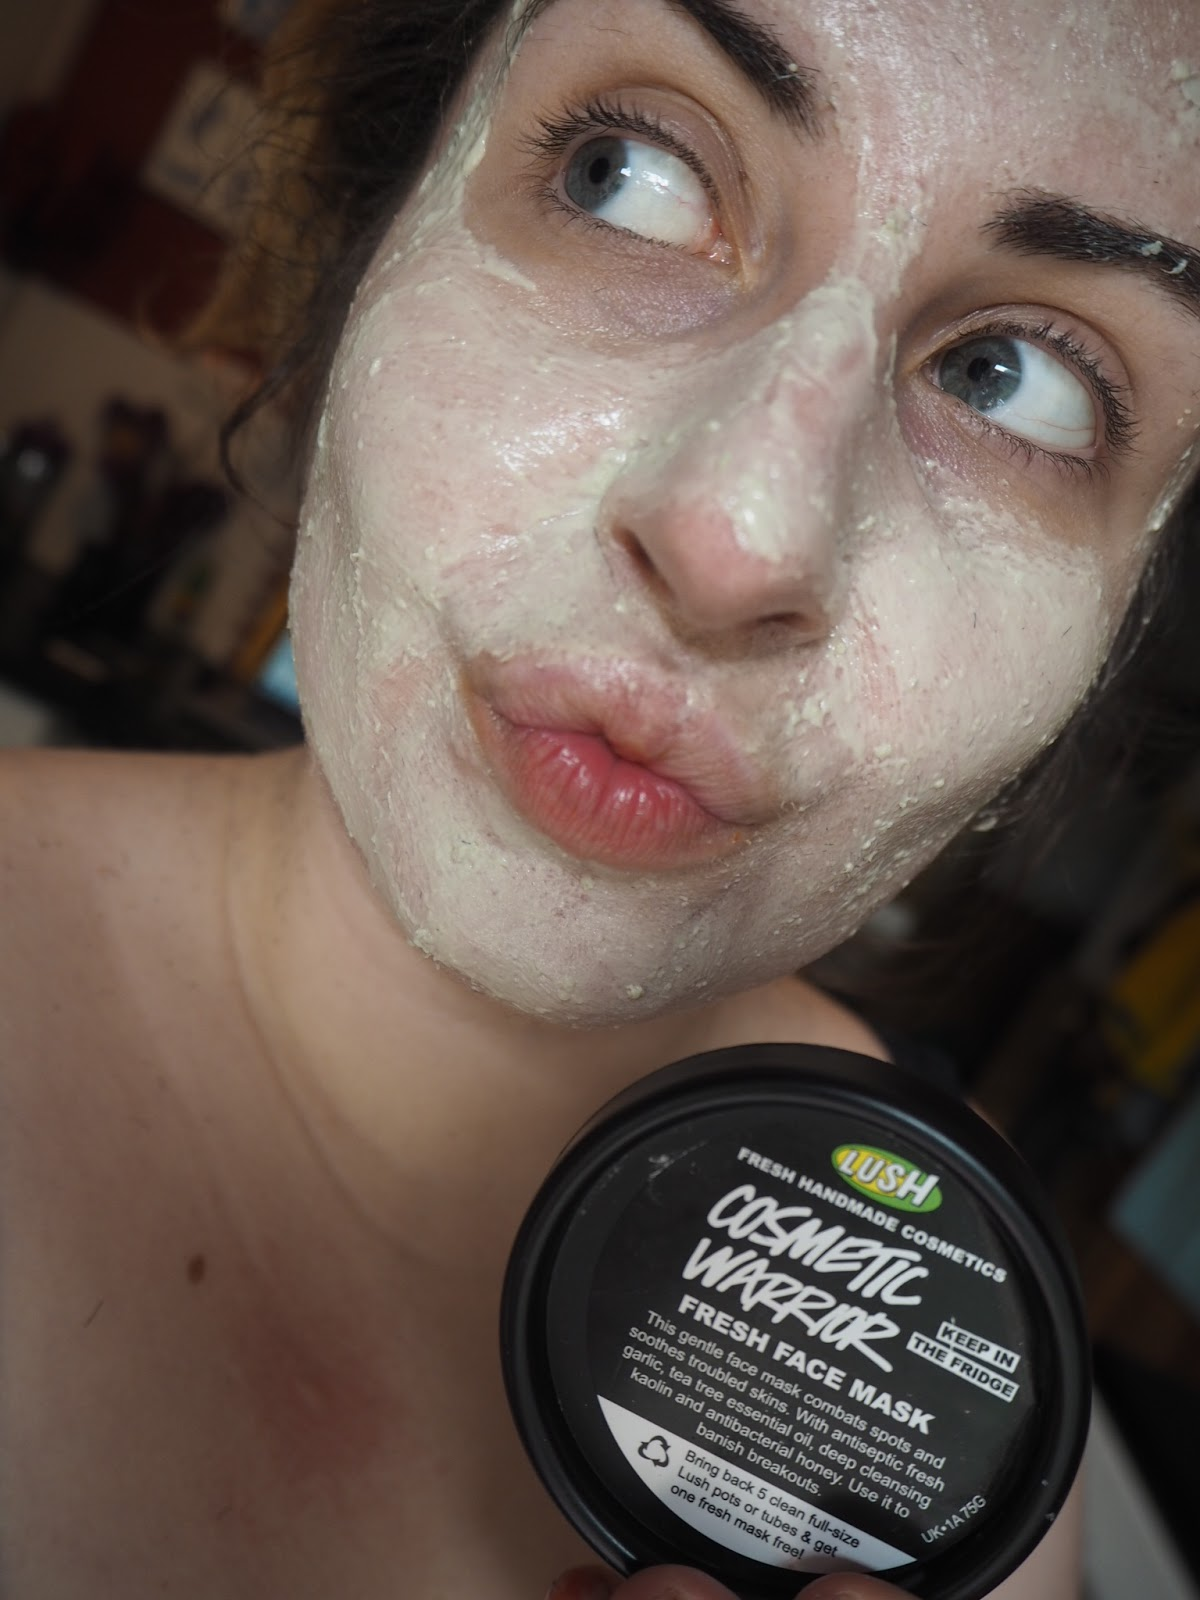 Back To Lush: Recycling Scheme + Mini Reviews